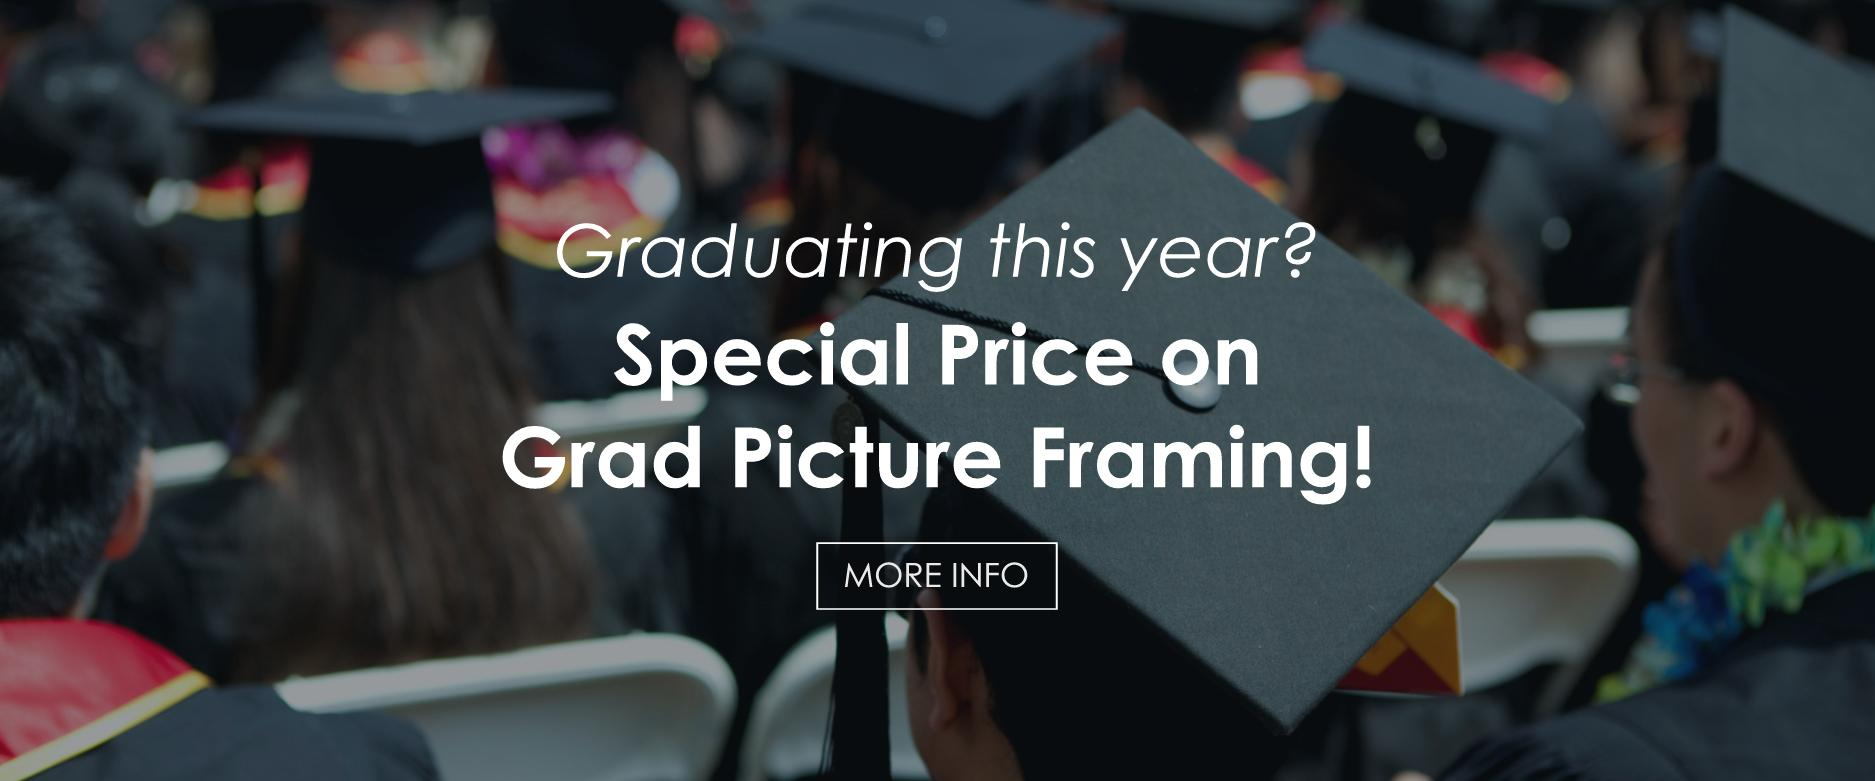 Graduation Framing Special